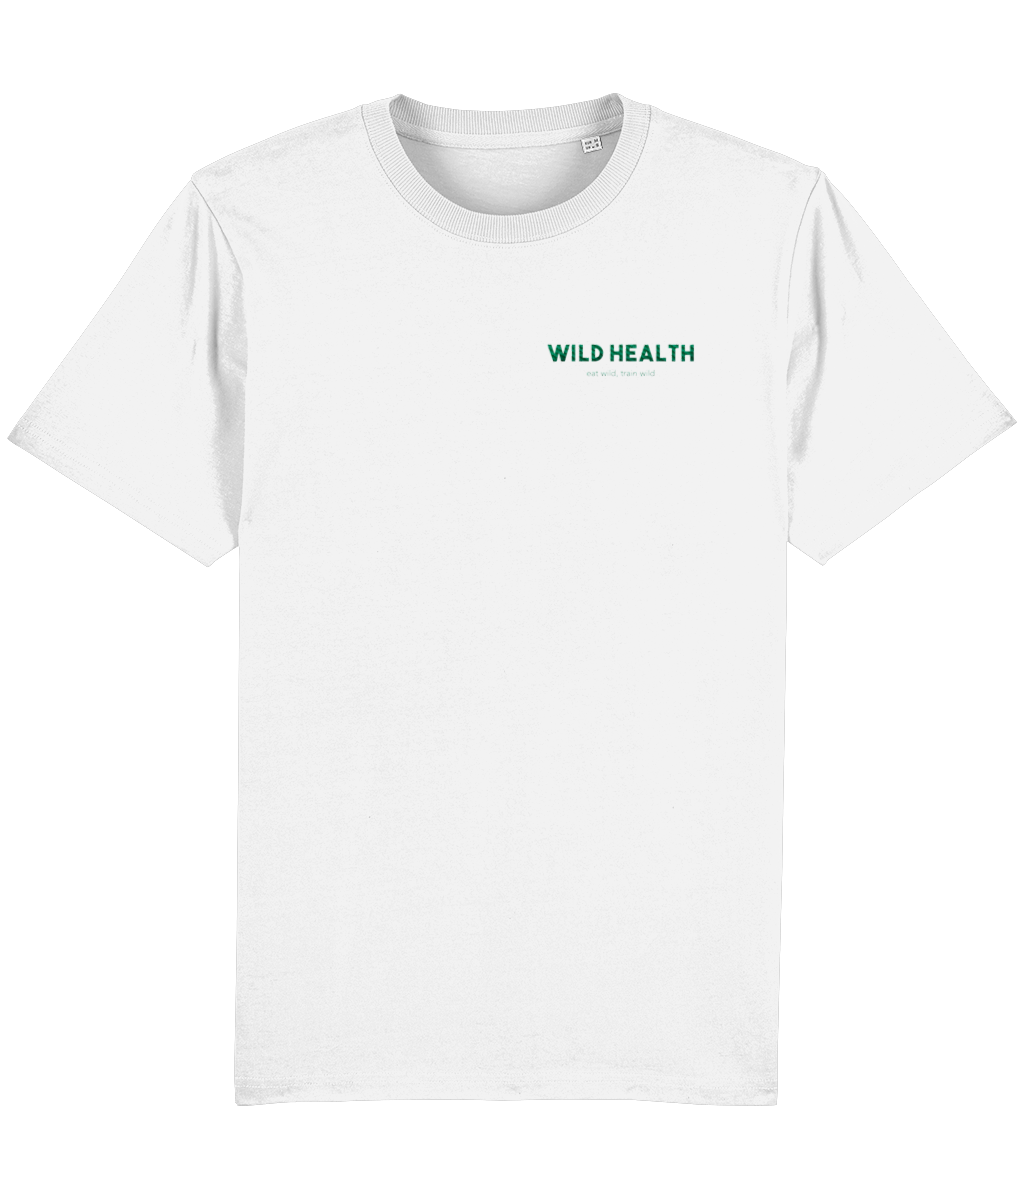 Wild Health Embroidered Sparker T-Shirt - White/Green